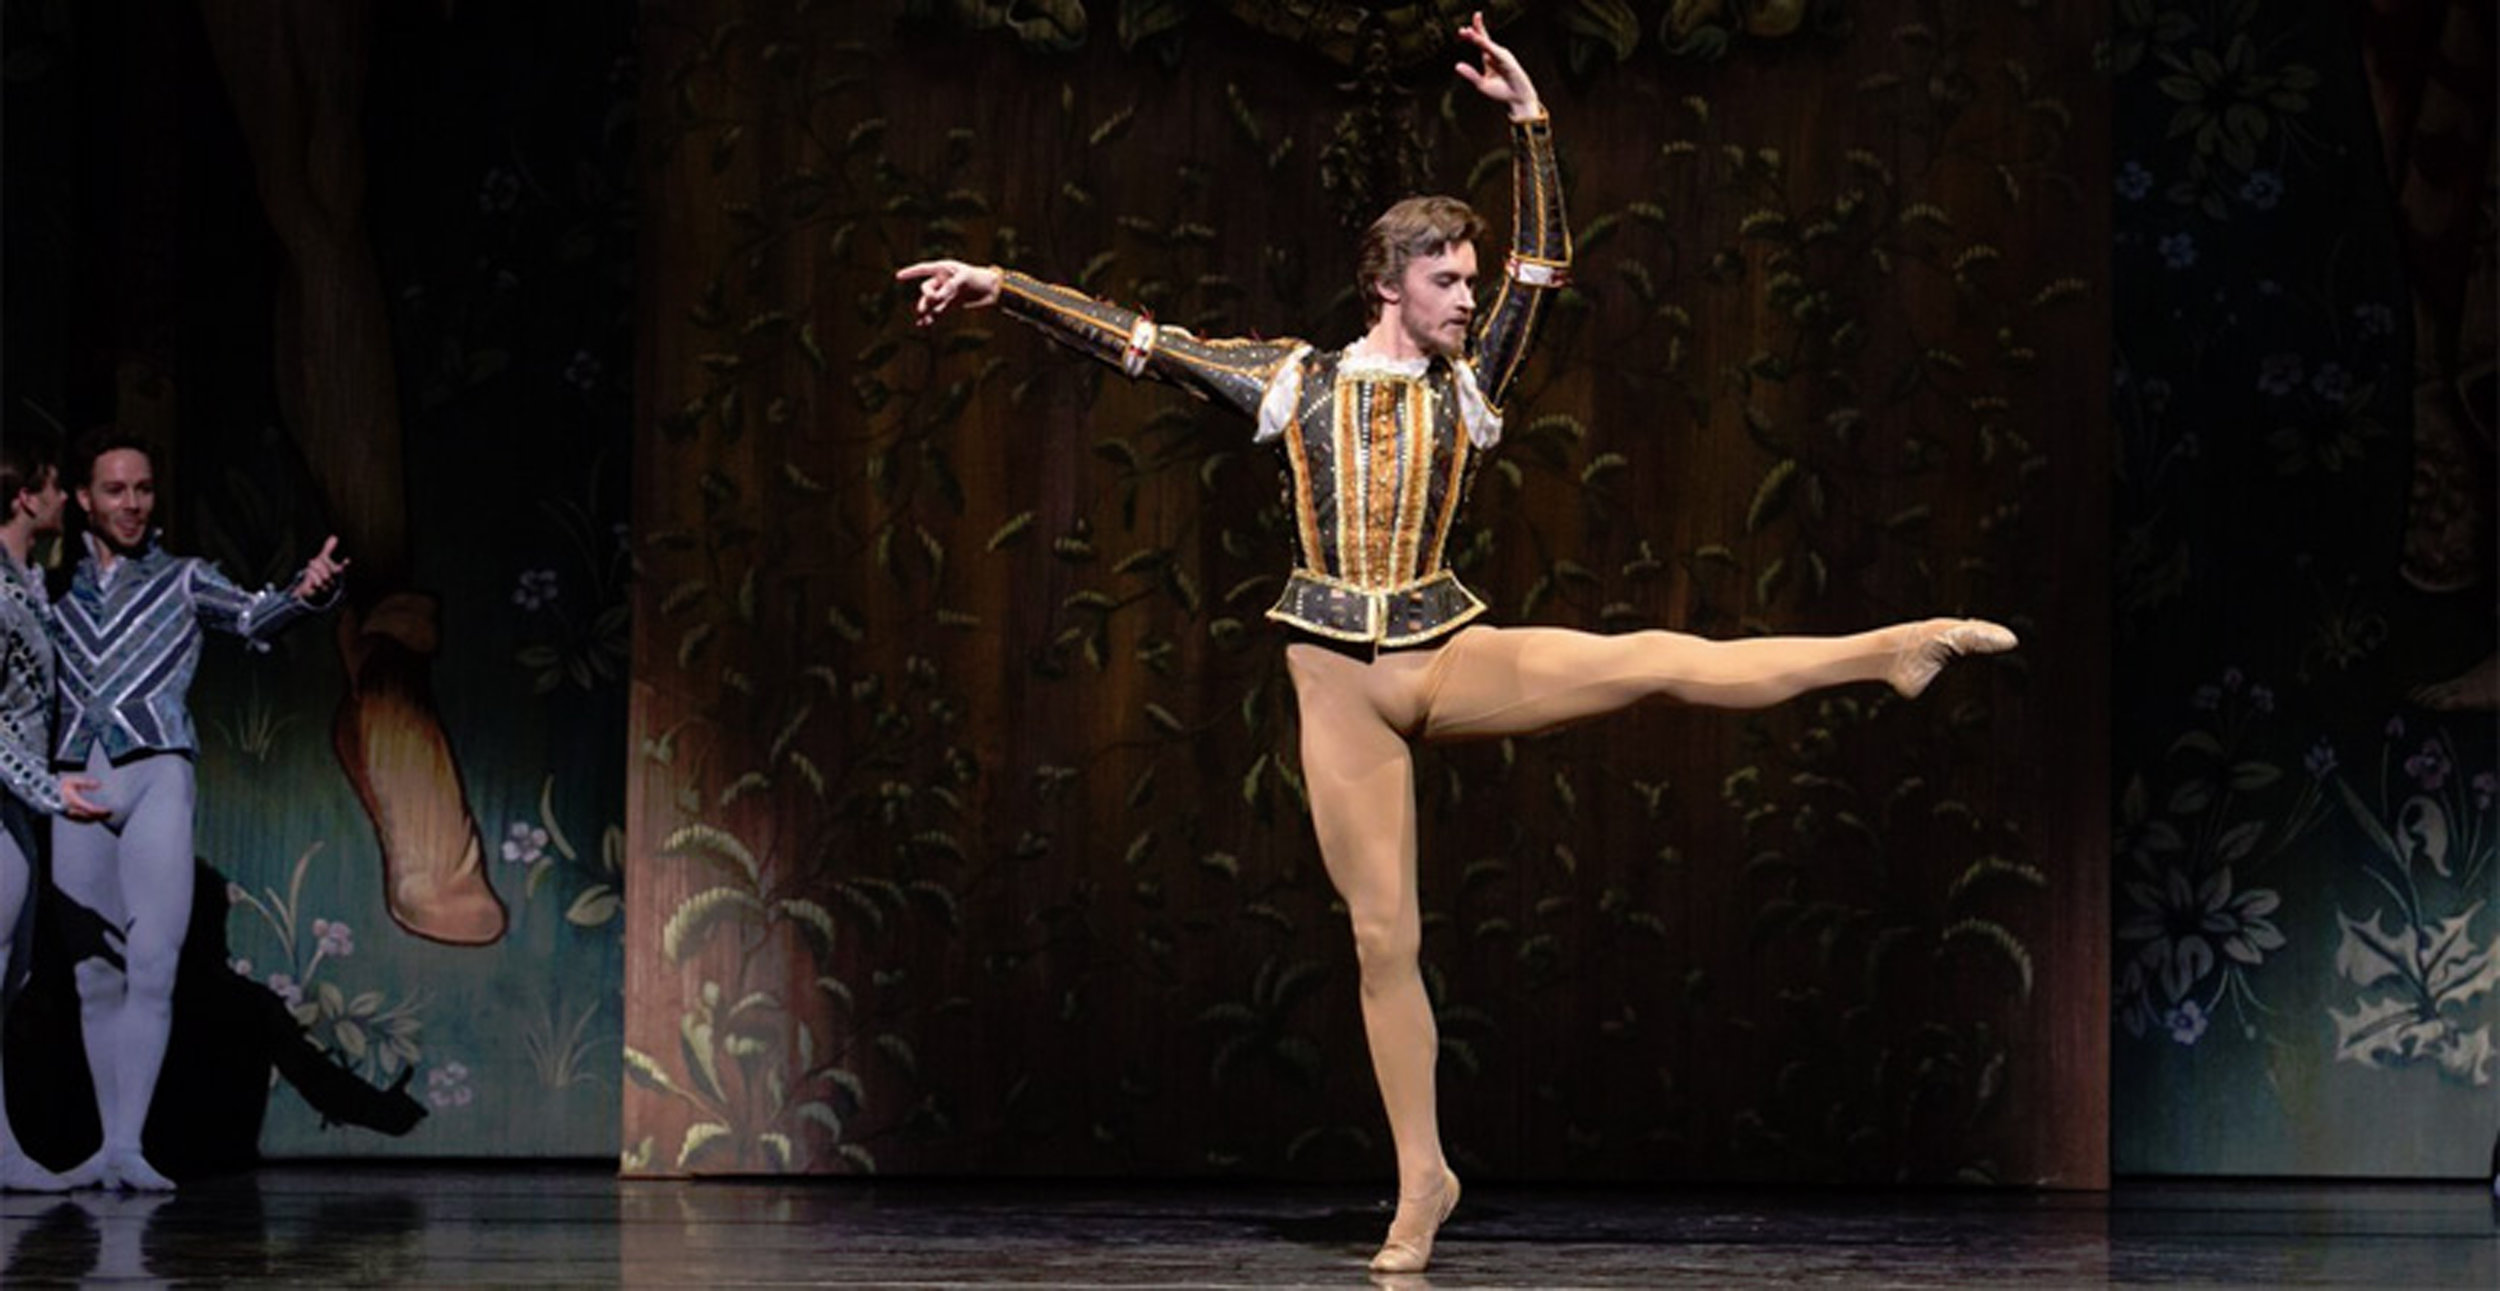 Houston Ballet principal dancer Jared Matthews loves transporting the audience to an imaginary place through dance. Photo courtesy of Houston Ballet